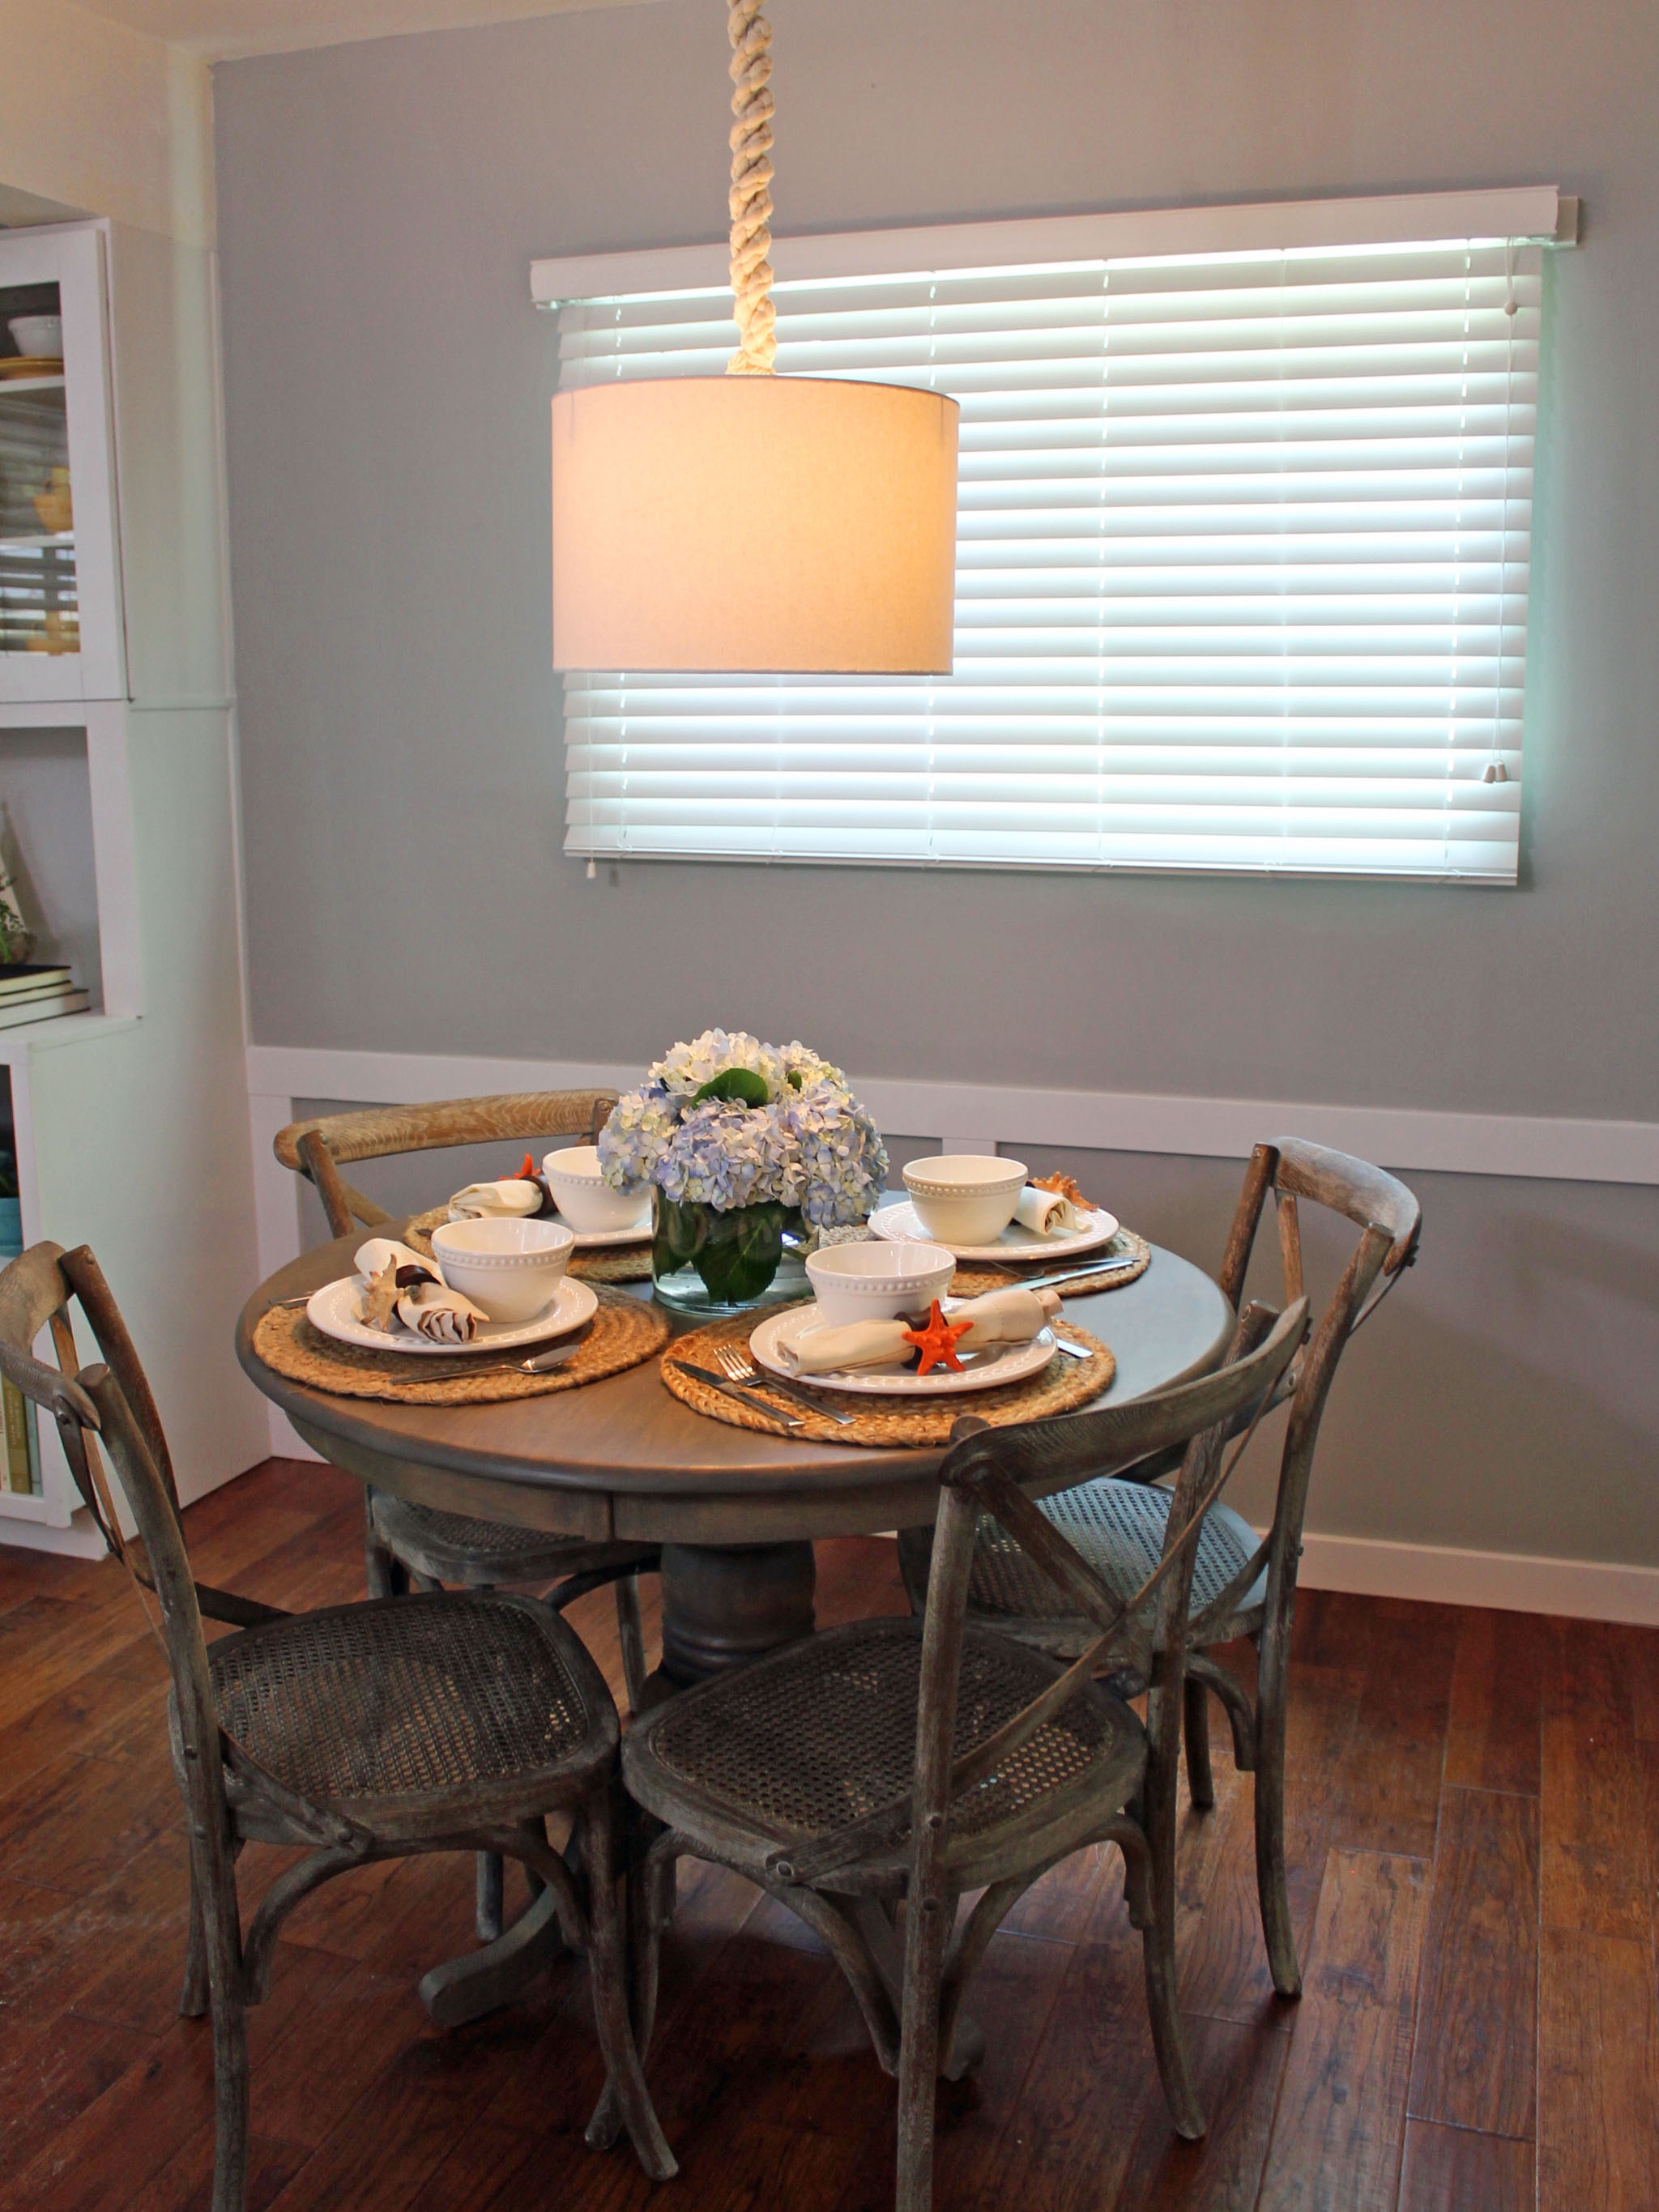 Small Space Dining Room Decoration Tips 17035 Dining